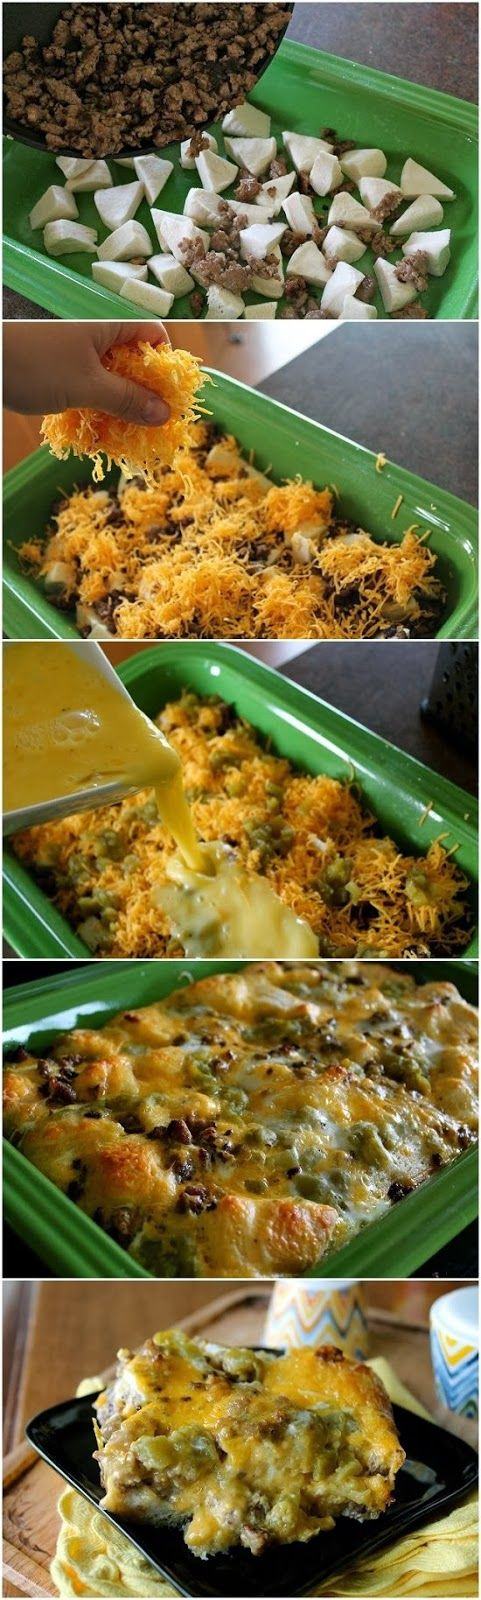 Bubble Up Breakfast Bake- recipe- reduced fat breakfast sausage, refrigerated biscuits, cheddar cheese, diced green chills, eggs...